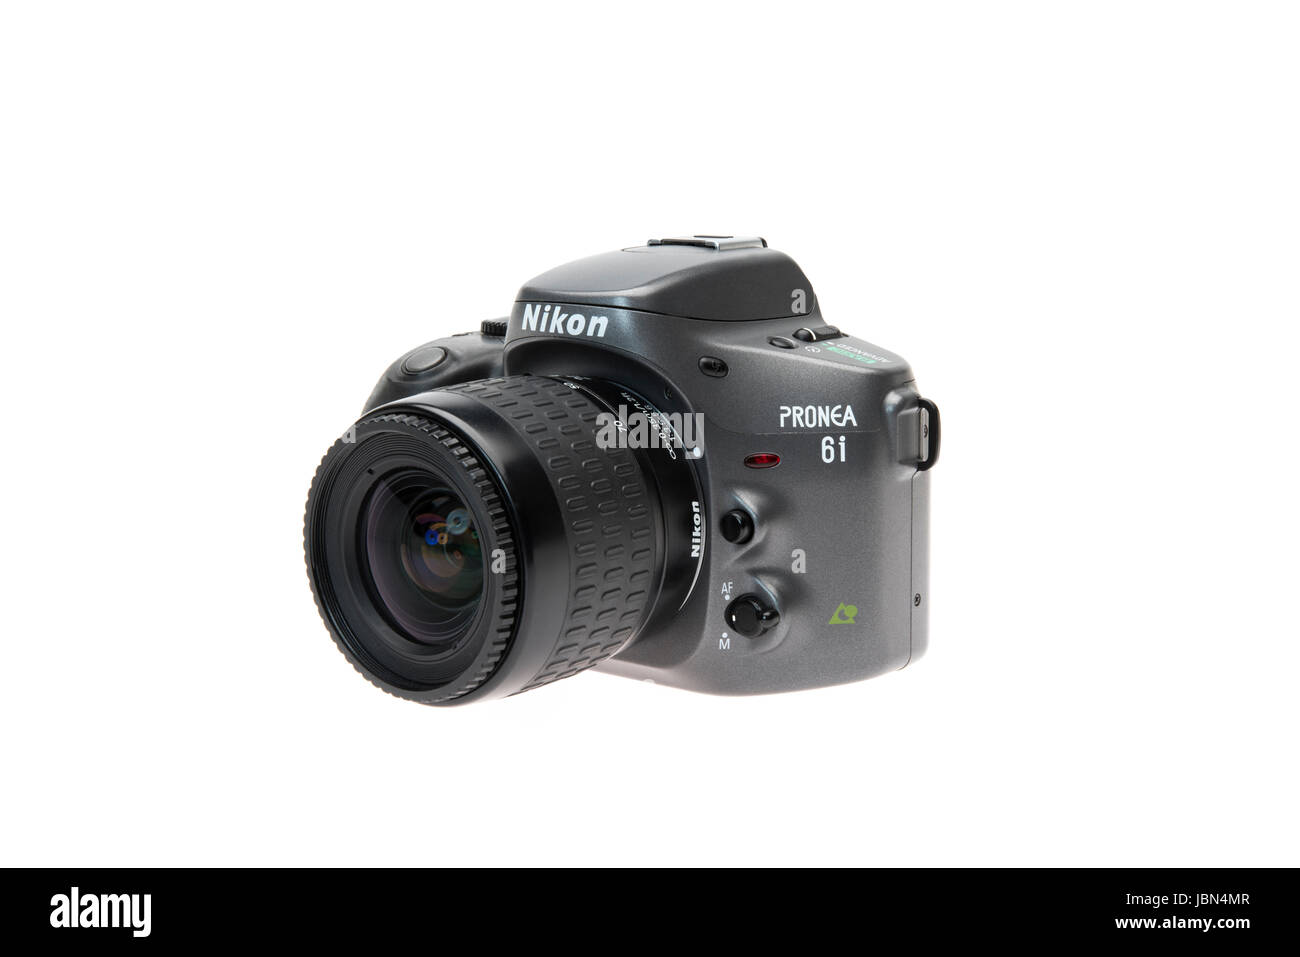 Nikon PRONEA 6i (600i) with IX-Nikkor lens APS film SLR camera released 1996 - Stock Image